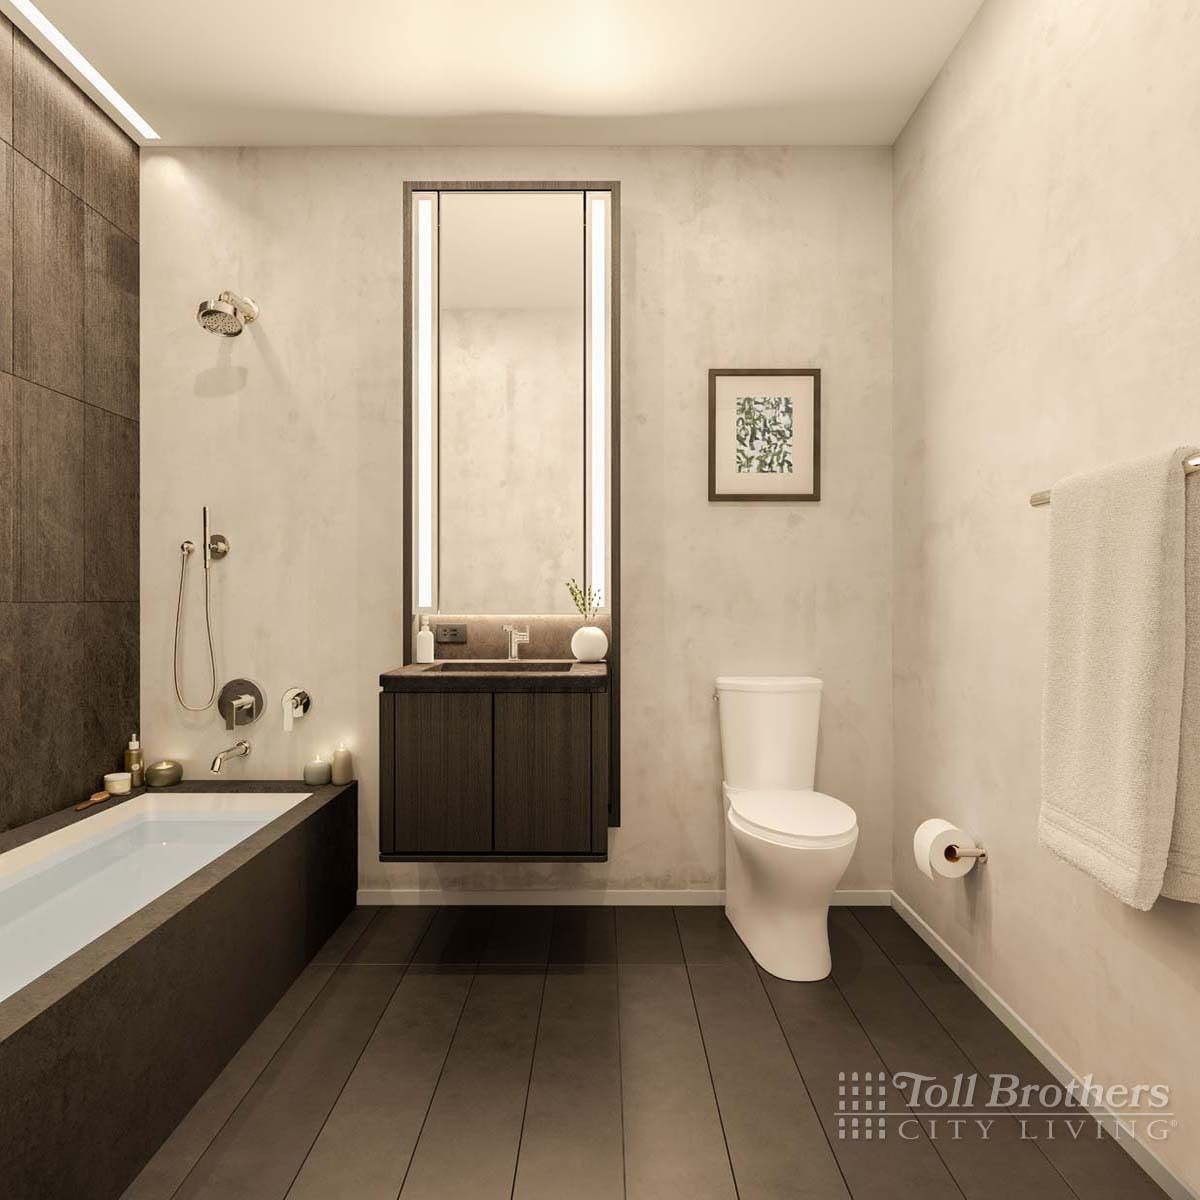 Bathroom featured in the S14B By Toll Brothers in New York, NY